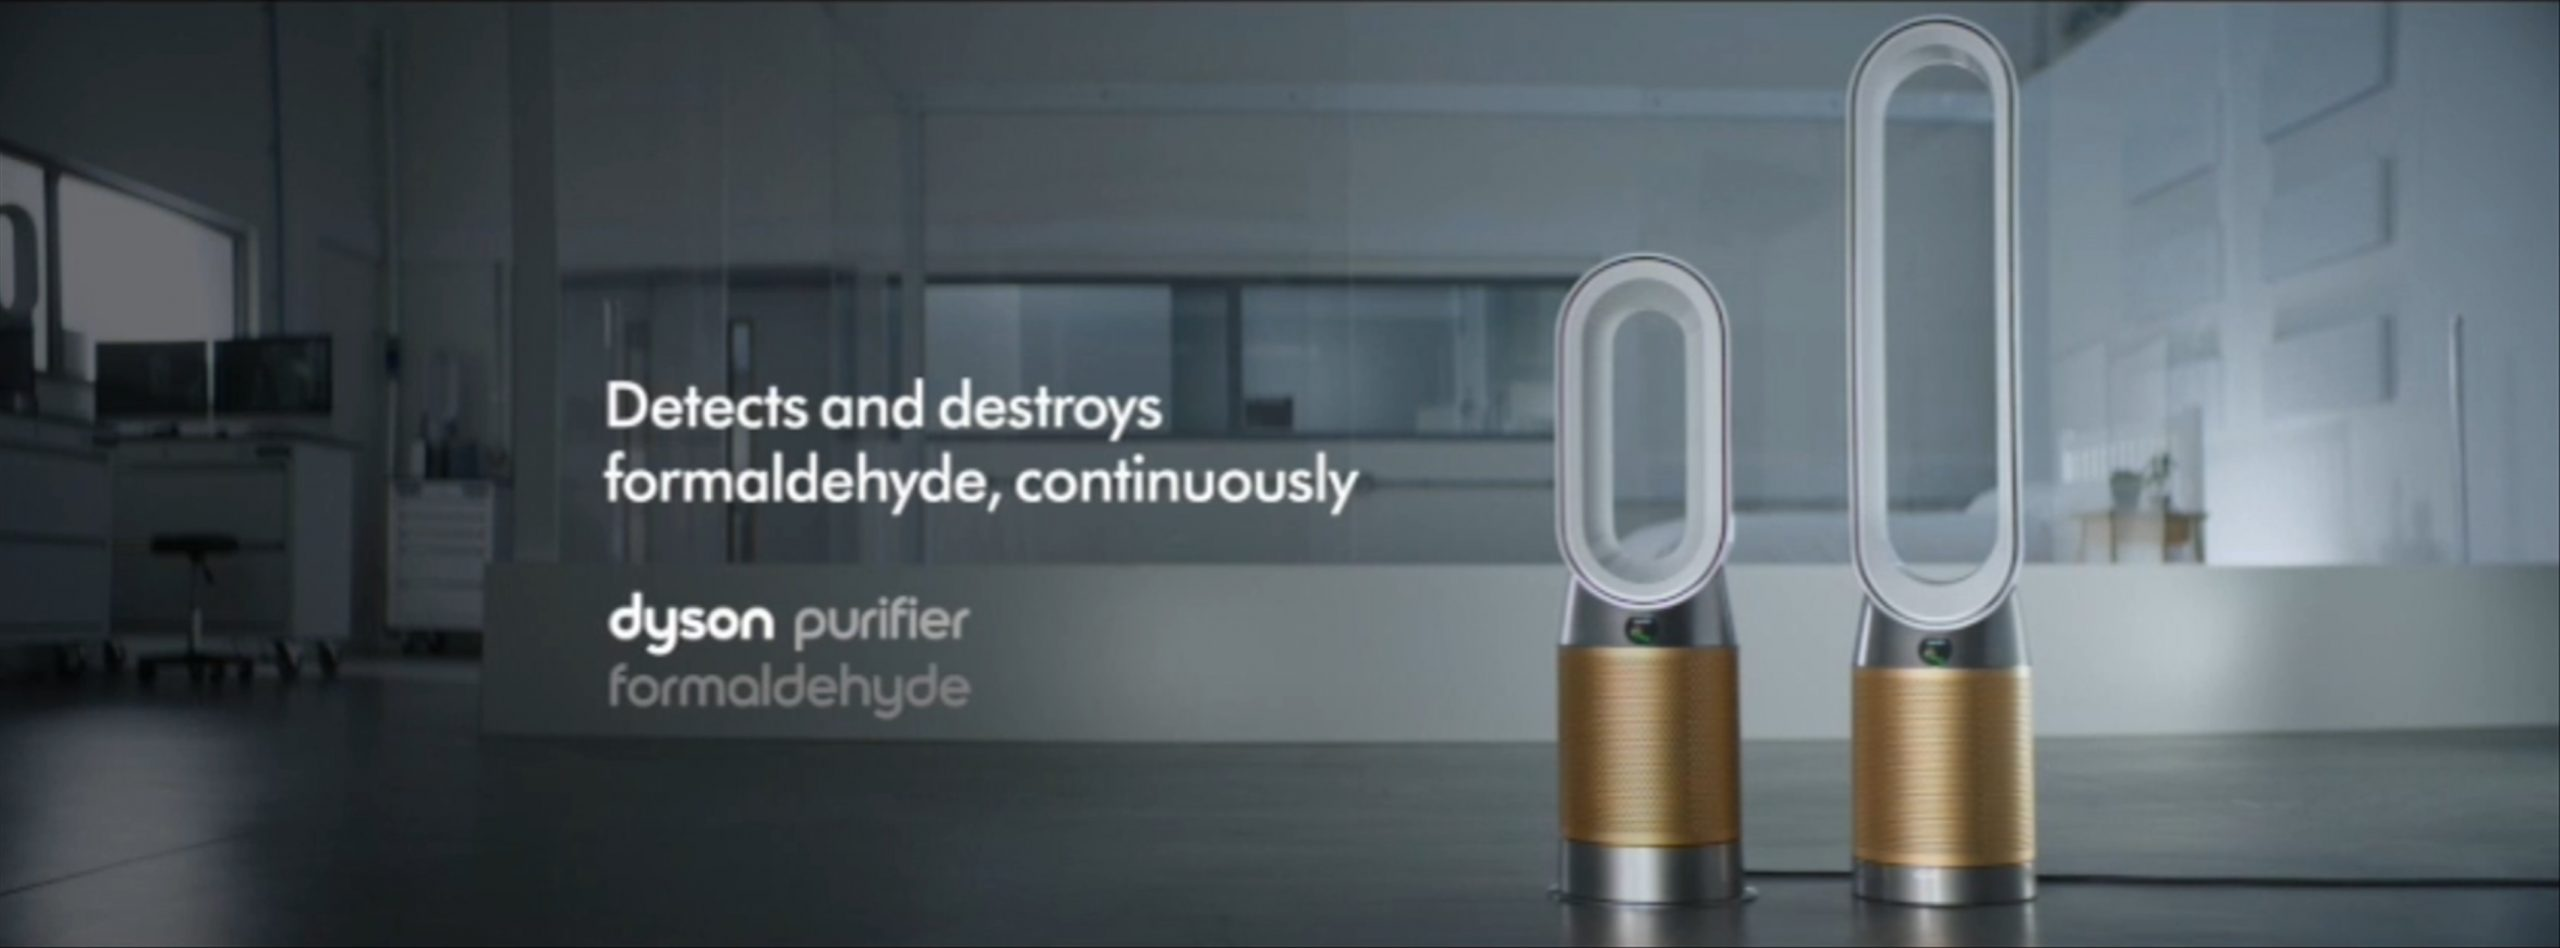 Dyson's latest air purifier can now sense and destroy formaldehyde